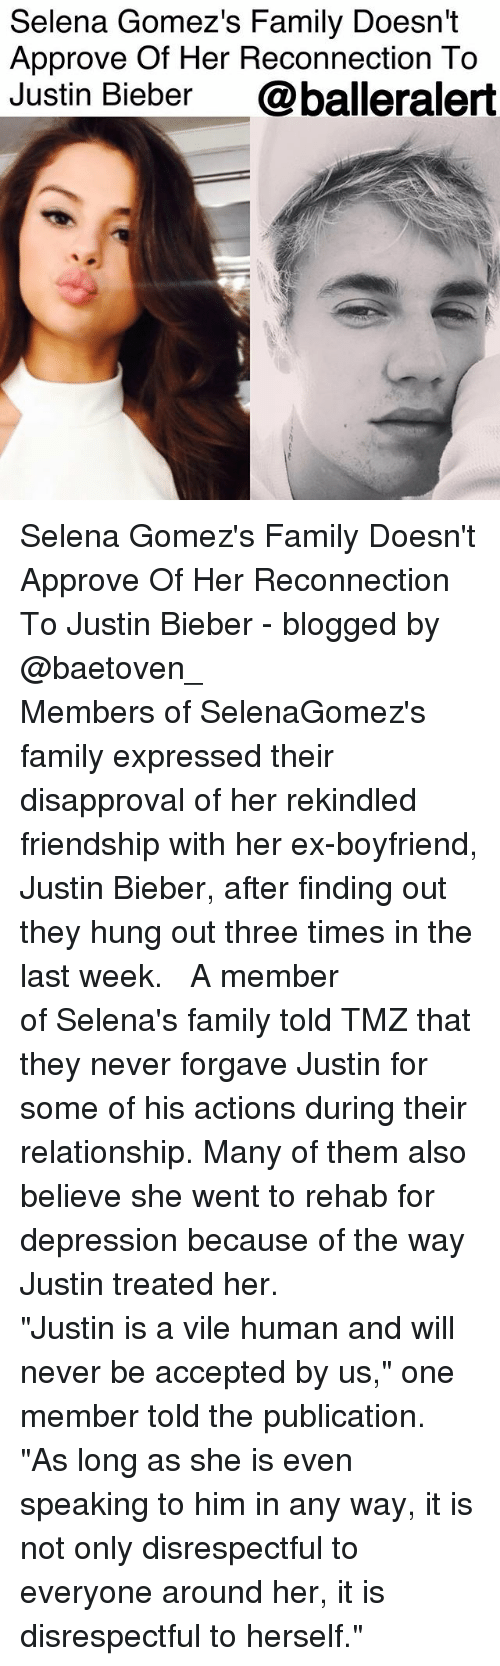 "Family, Justin Bieber, and Memes: Selena Gomez's Family Doesn't  Approve Of Her Reconnection To  Justin Bieber @balleralert Selena Gomez's Family Doesn't Approve Of Her Reconnection To Justin Bieber - blogged by @baetoven_ ⠀⠀⠀⠀⠀⠀⠀ ⠀⠀⠀⠀⠀⠀⠀ Members of SelenaGomez's family expressed their disapproval of her rekindled friendship with her ex-boyfriend, Justin Bieber, after finding out they hung out three times in the last week. ⠀⠀⠀⠀⠀⠀⠀ ⠀⠀⠀⠀⠀⠀⠀ A member of Selena's family told TMZ that they never forgave Justin for some of his actions during their relationship. Many of them also believe she went to rehab for depression because of the way Justin treated her. ⠀⠀⠀⠀⠀⠀⠀ ⠀⠀⠀⠀⠀⠀⠀ ""Justin is a vile human and will never be accepted by us,"" one member told the publication. ""As long as she is even speaking to him in any way, it is not only disrespectful to everyone around her, it is disrespectful to herself."" ⠀⠀⠀⠀⠀⠀⠀"